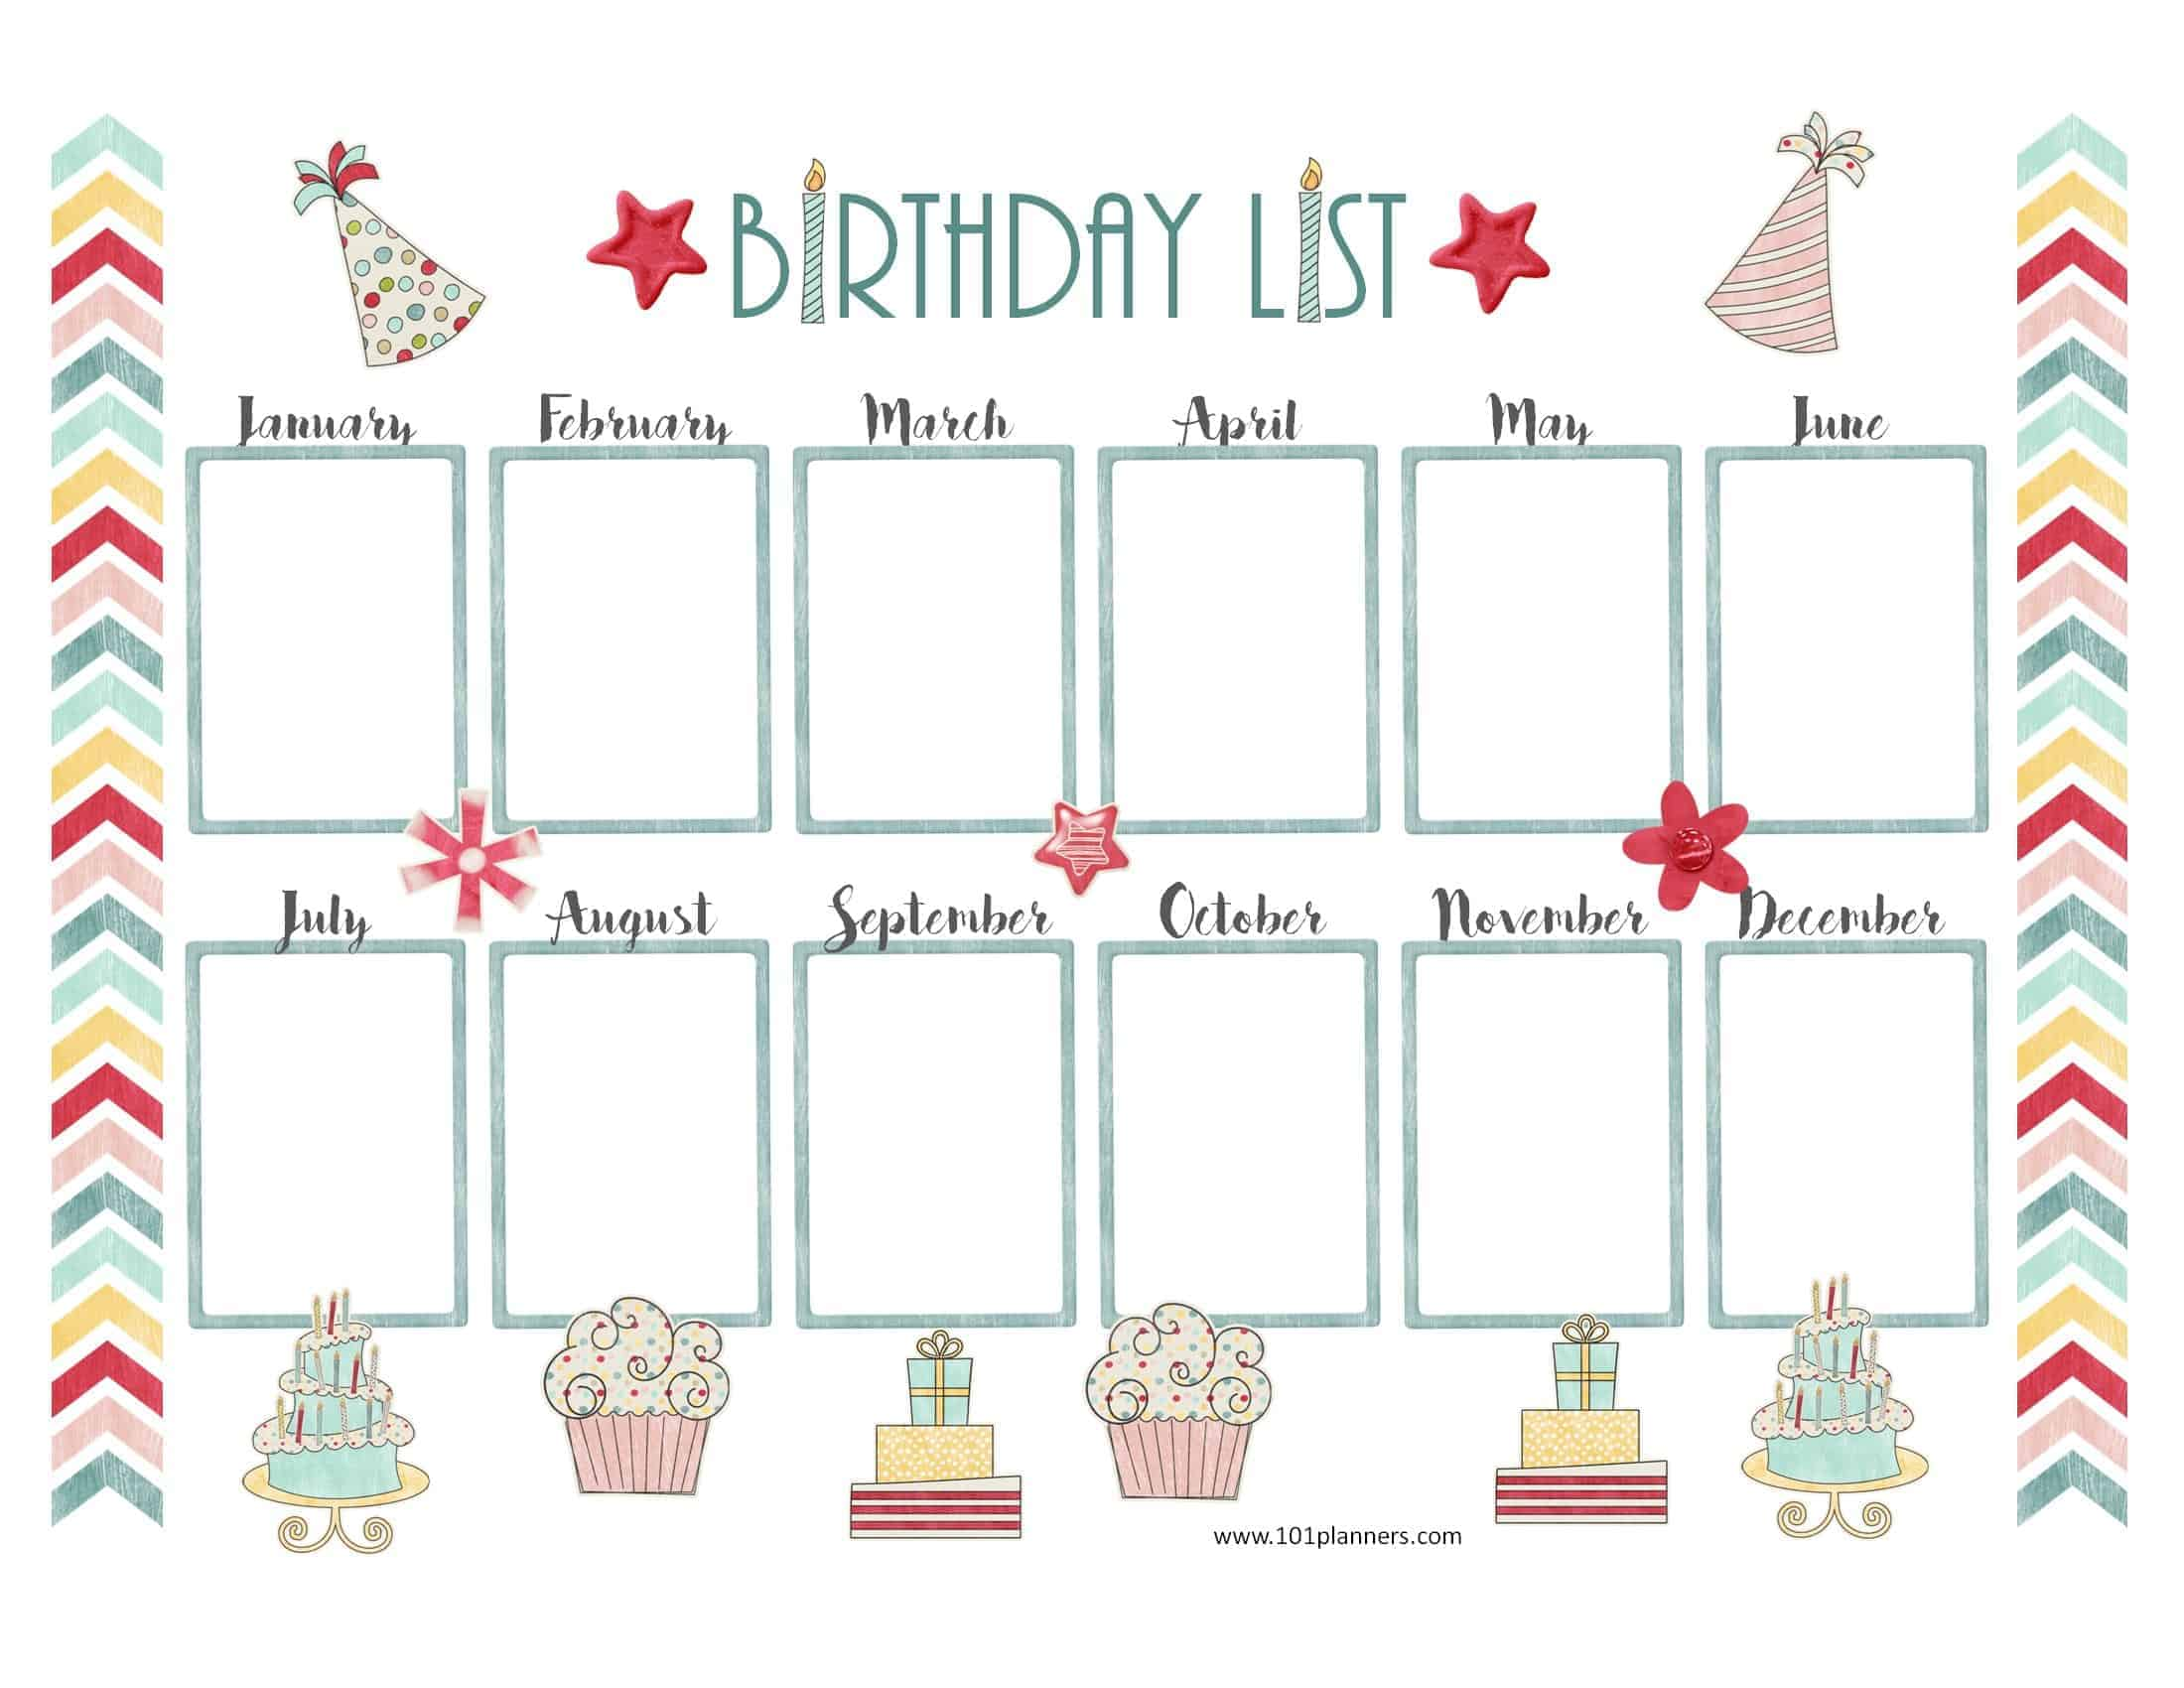 Calendar Date Selection In Excel Popup Calendar For Excel Xltools Excel Add Ins You Free Birthday Calendar